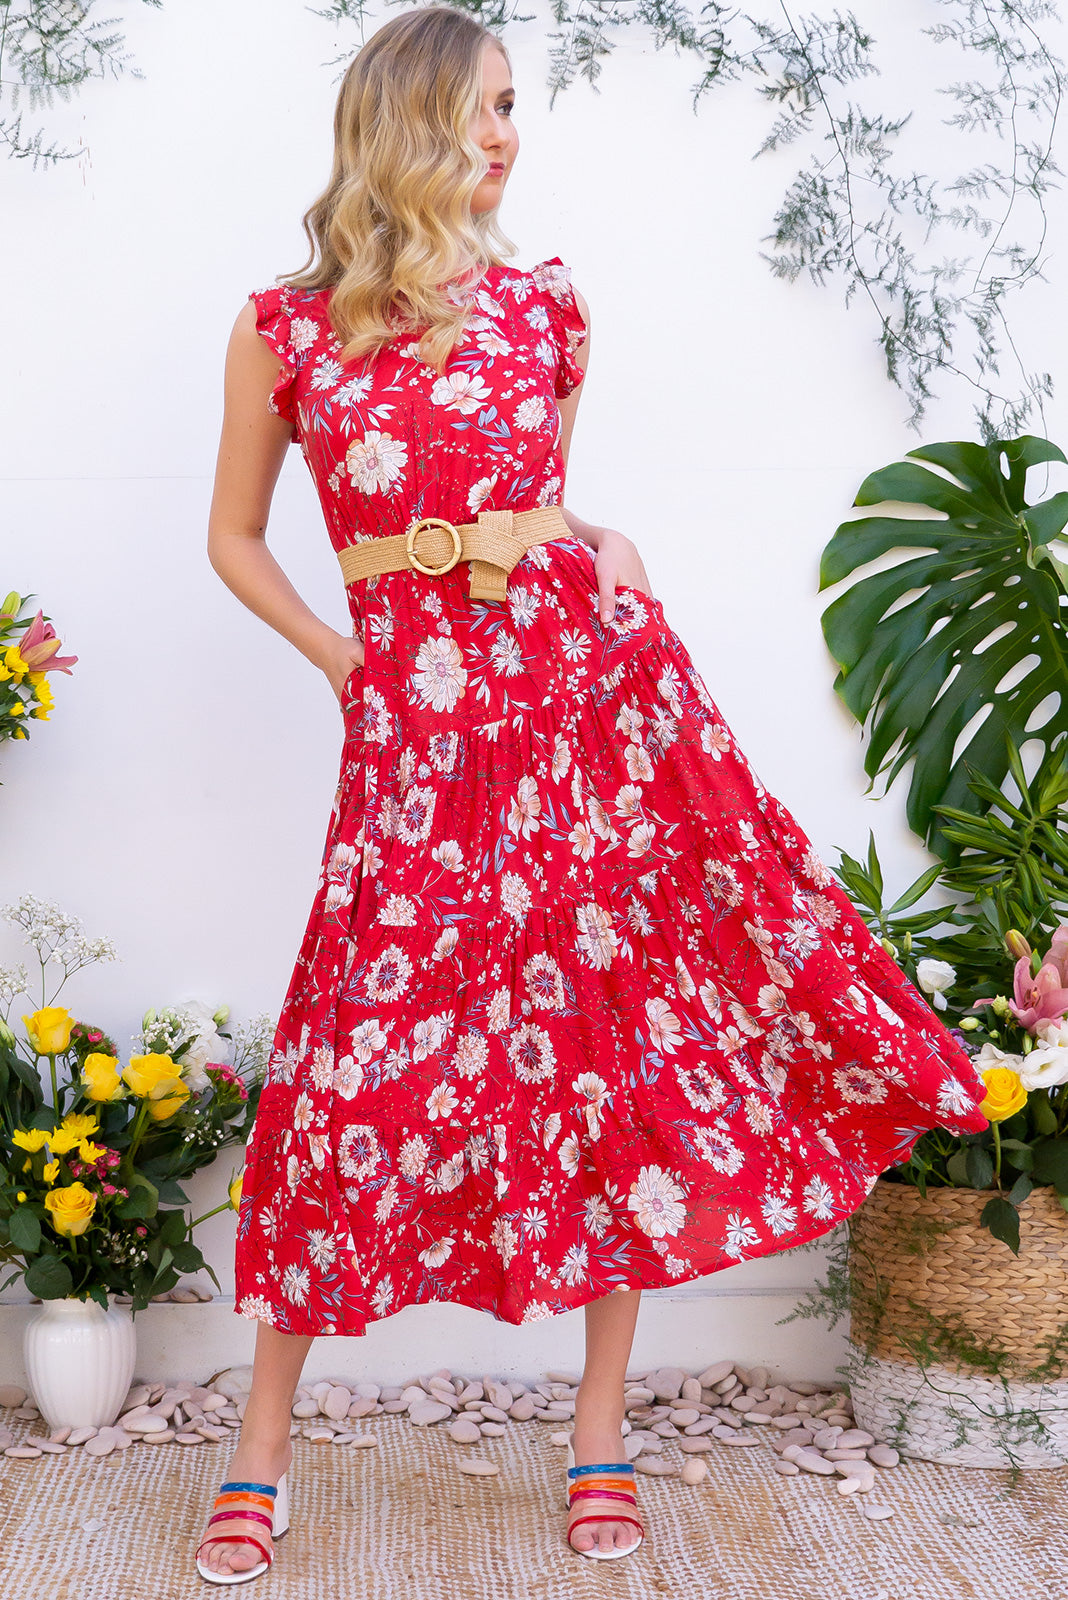 Jasmine Red Romance Maxi Dress features a vintage inspired high neck and a feminine short butterfly sleeve. Made from rayon red fabric in a classic floral print. Includes rattan belt, side pockets and tiered skirt.